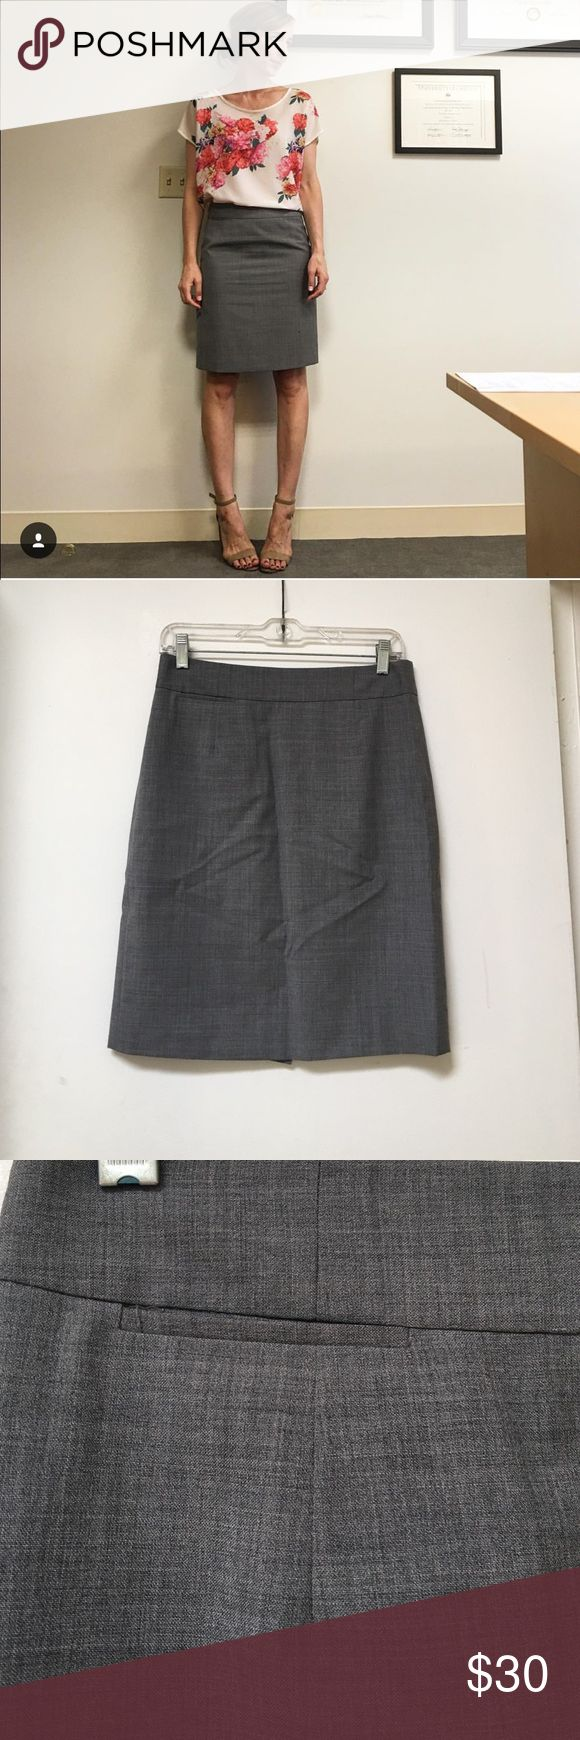 J.Crew Factory gray pencil skirt size 4 Great gray pencil skirt - jcrew factory. Size 4. Great for work! (Excuse the wrinkles - just needs an iron). Worn just a few times. Doesn't fit anymore. J.Crew Factory Skirts Pencil